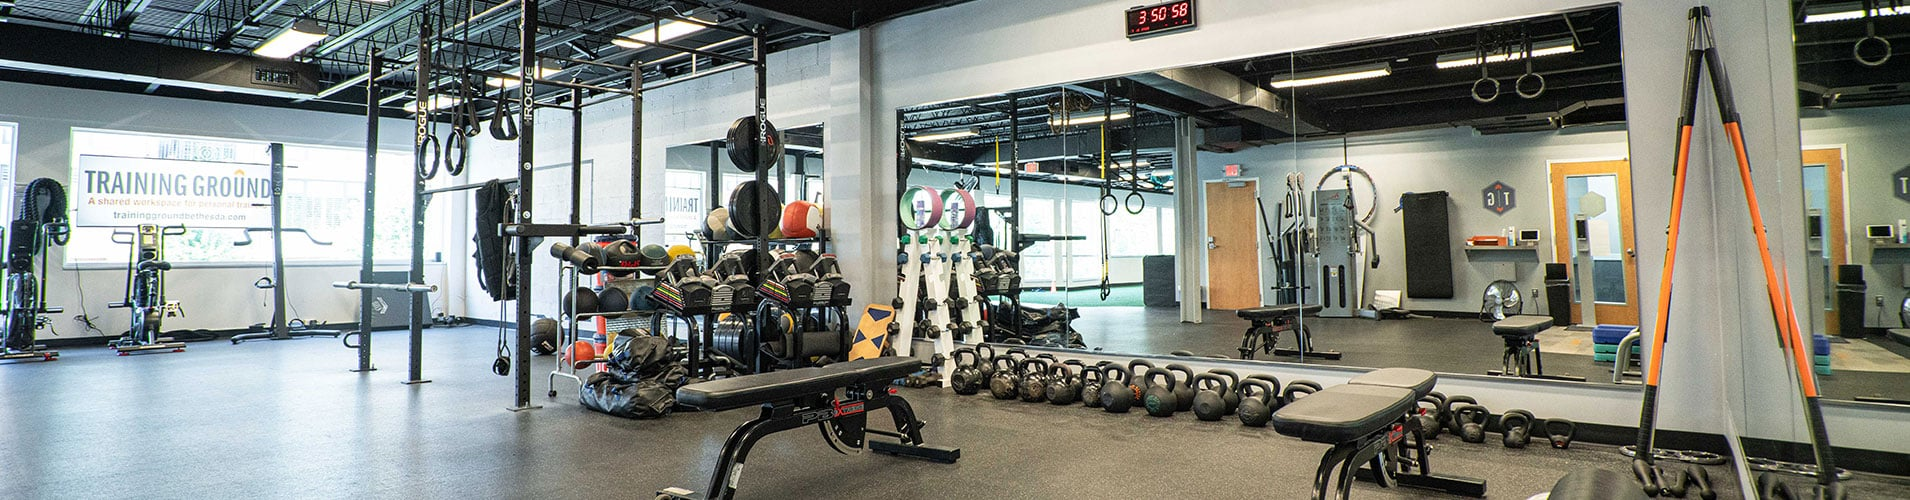 picture of inside training ground at Cohen Health & Performance